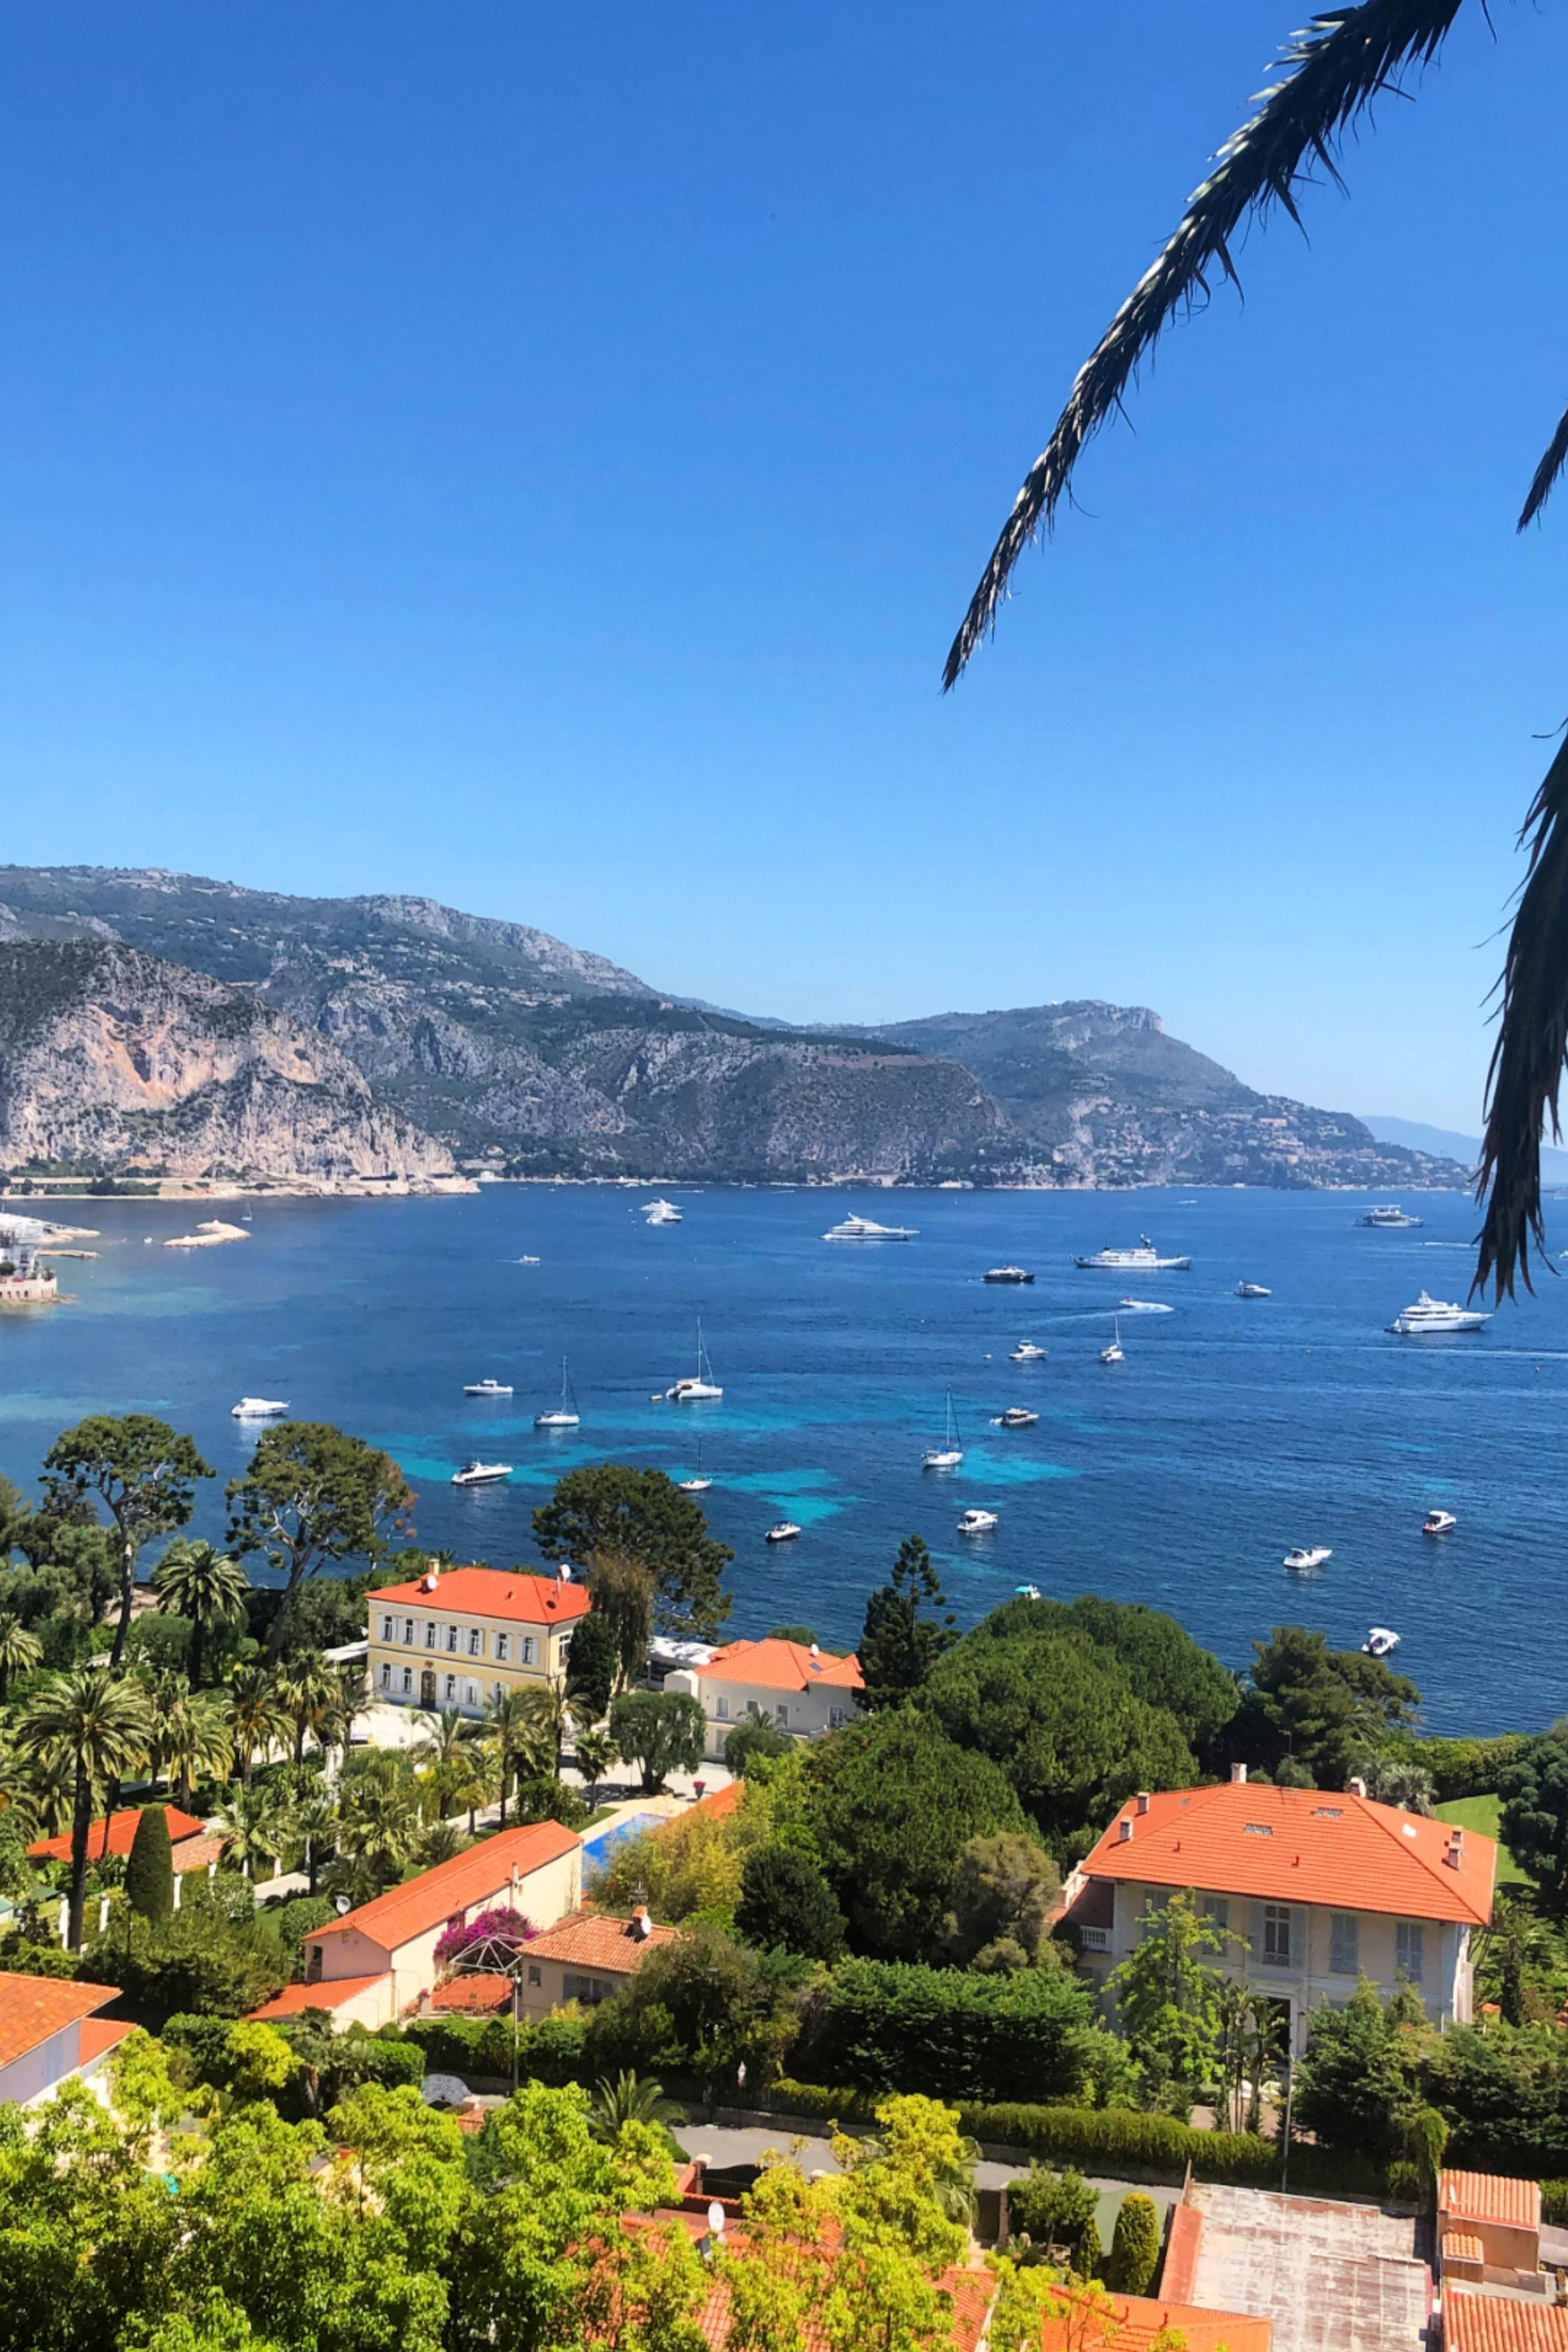 French Riviera Indagare Beautiful Places To Visit Travel Aesthetic Romantic Small Towns